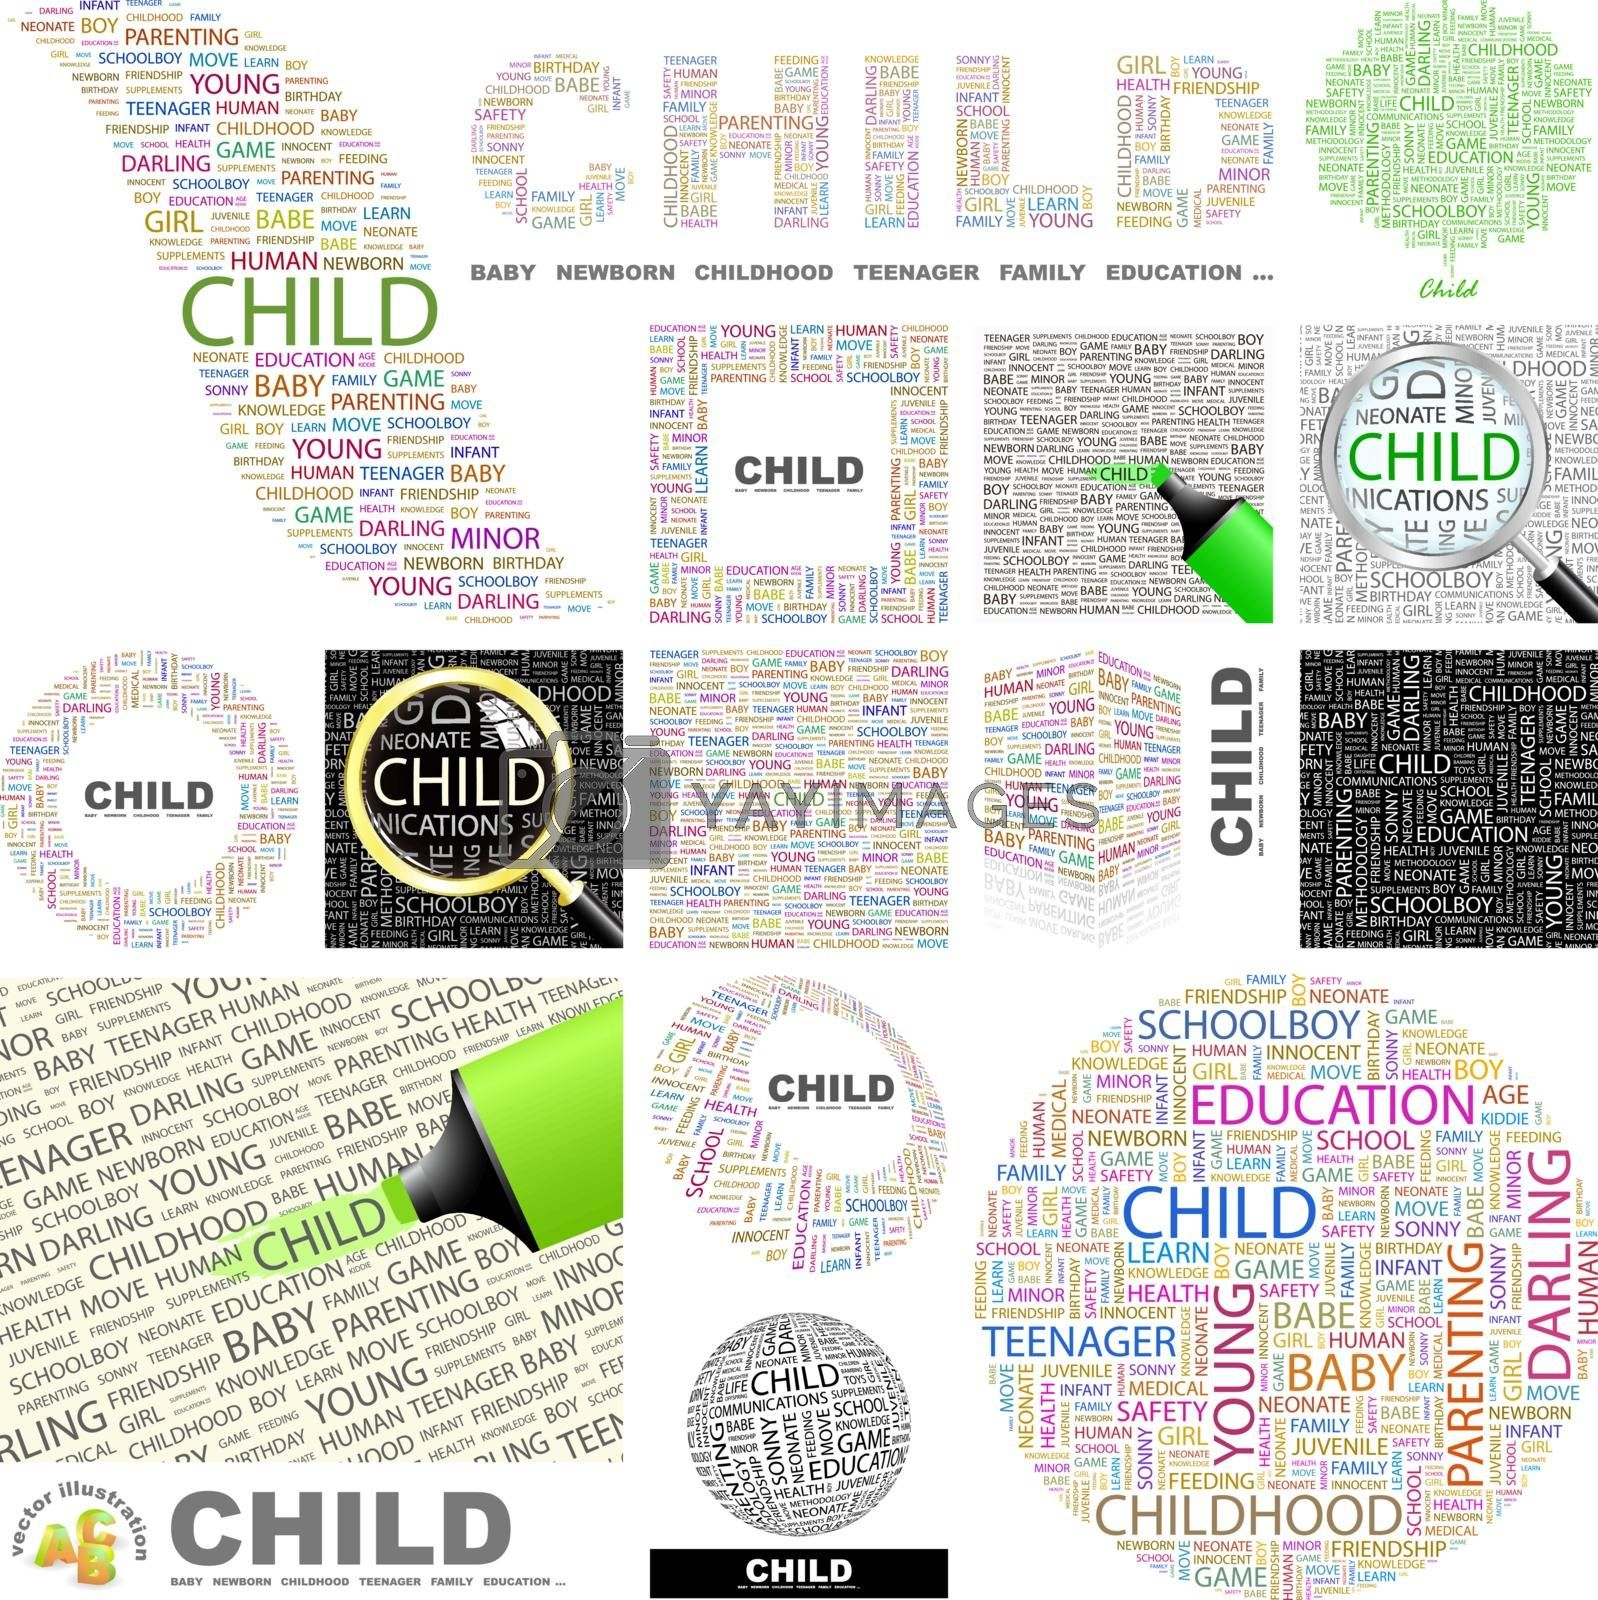 Child. Word cloud illustration. Wordcloud collage. Concept illustration.